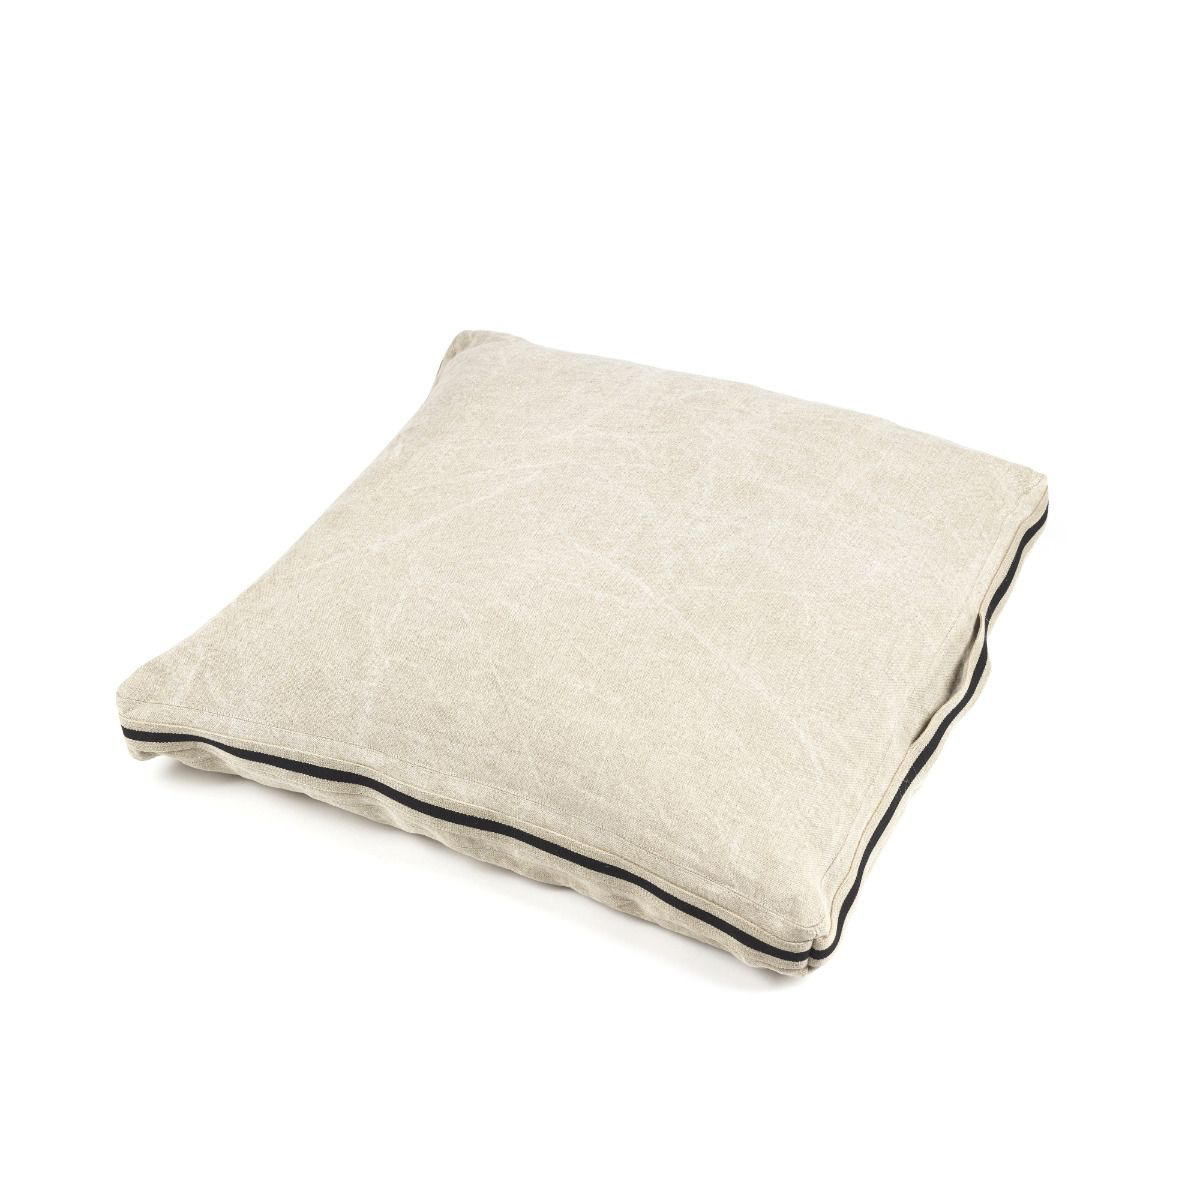 james floor cushion, libeco, accessories | pillows and cushions, - adorn.house